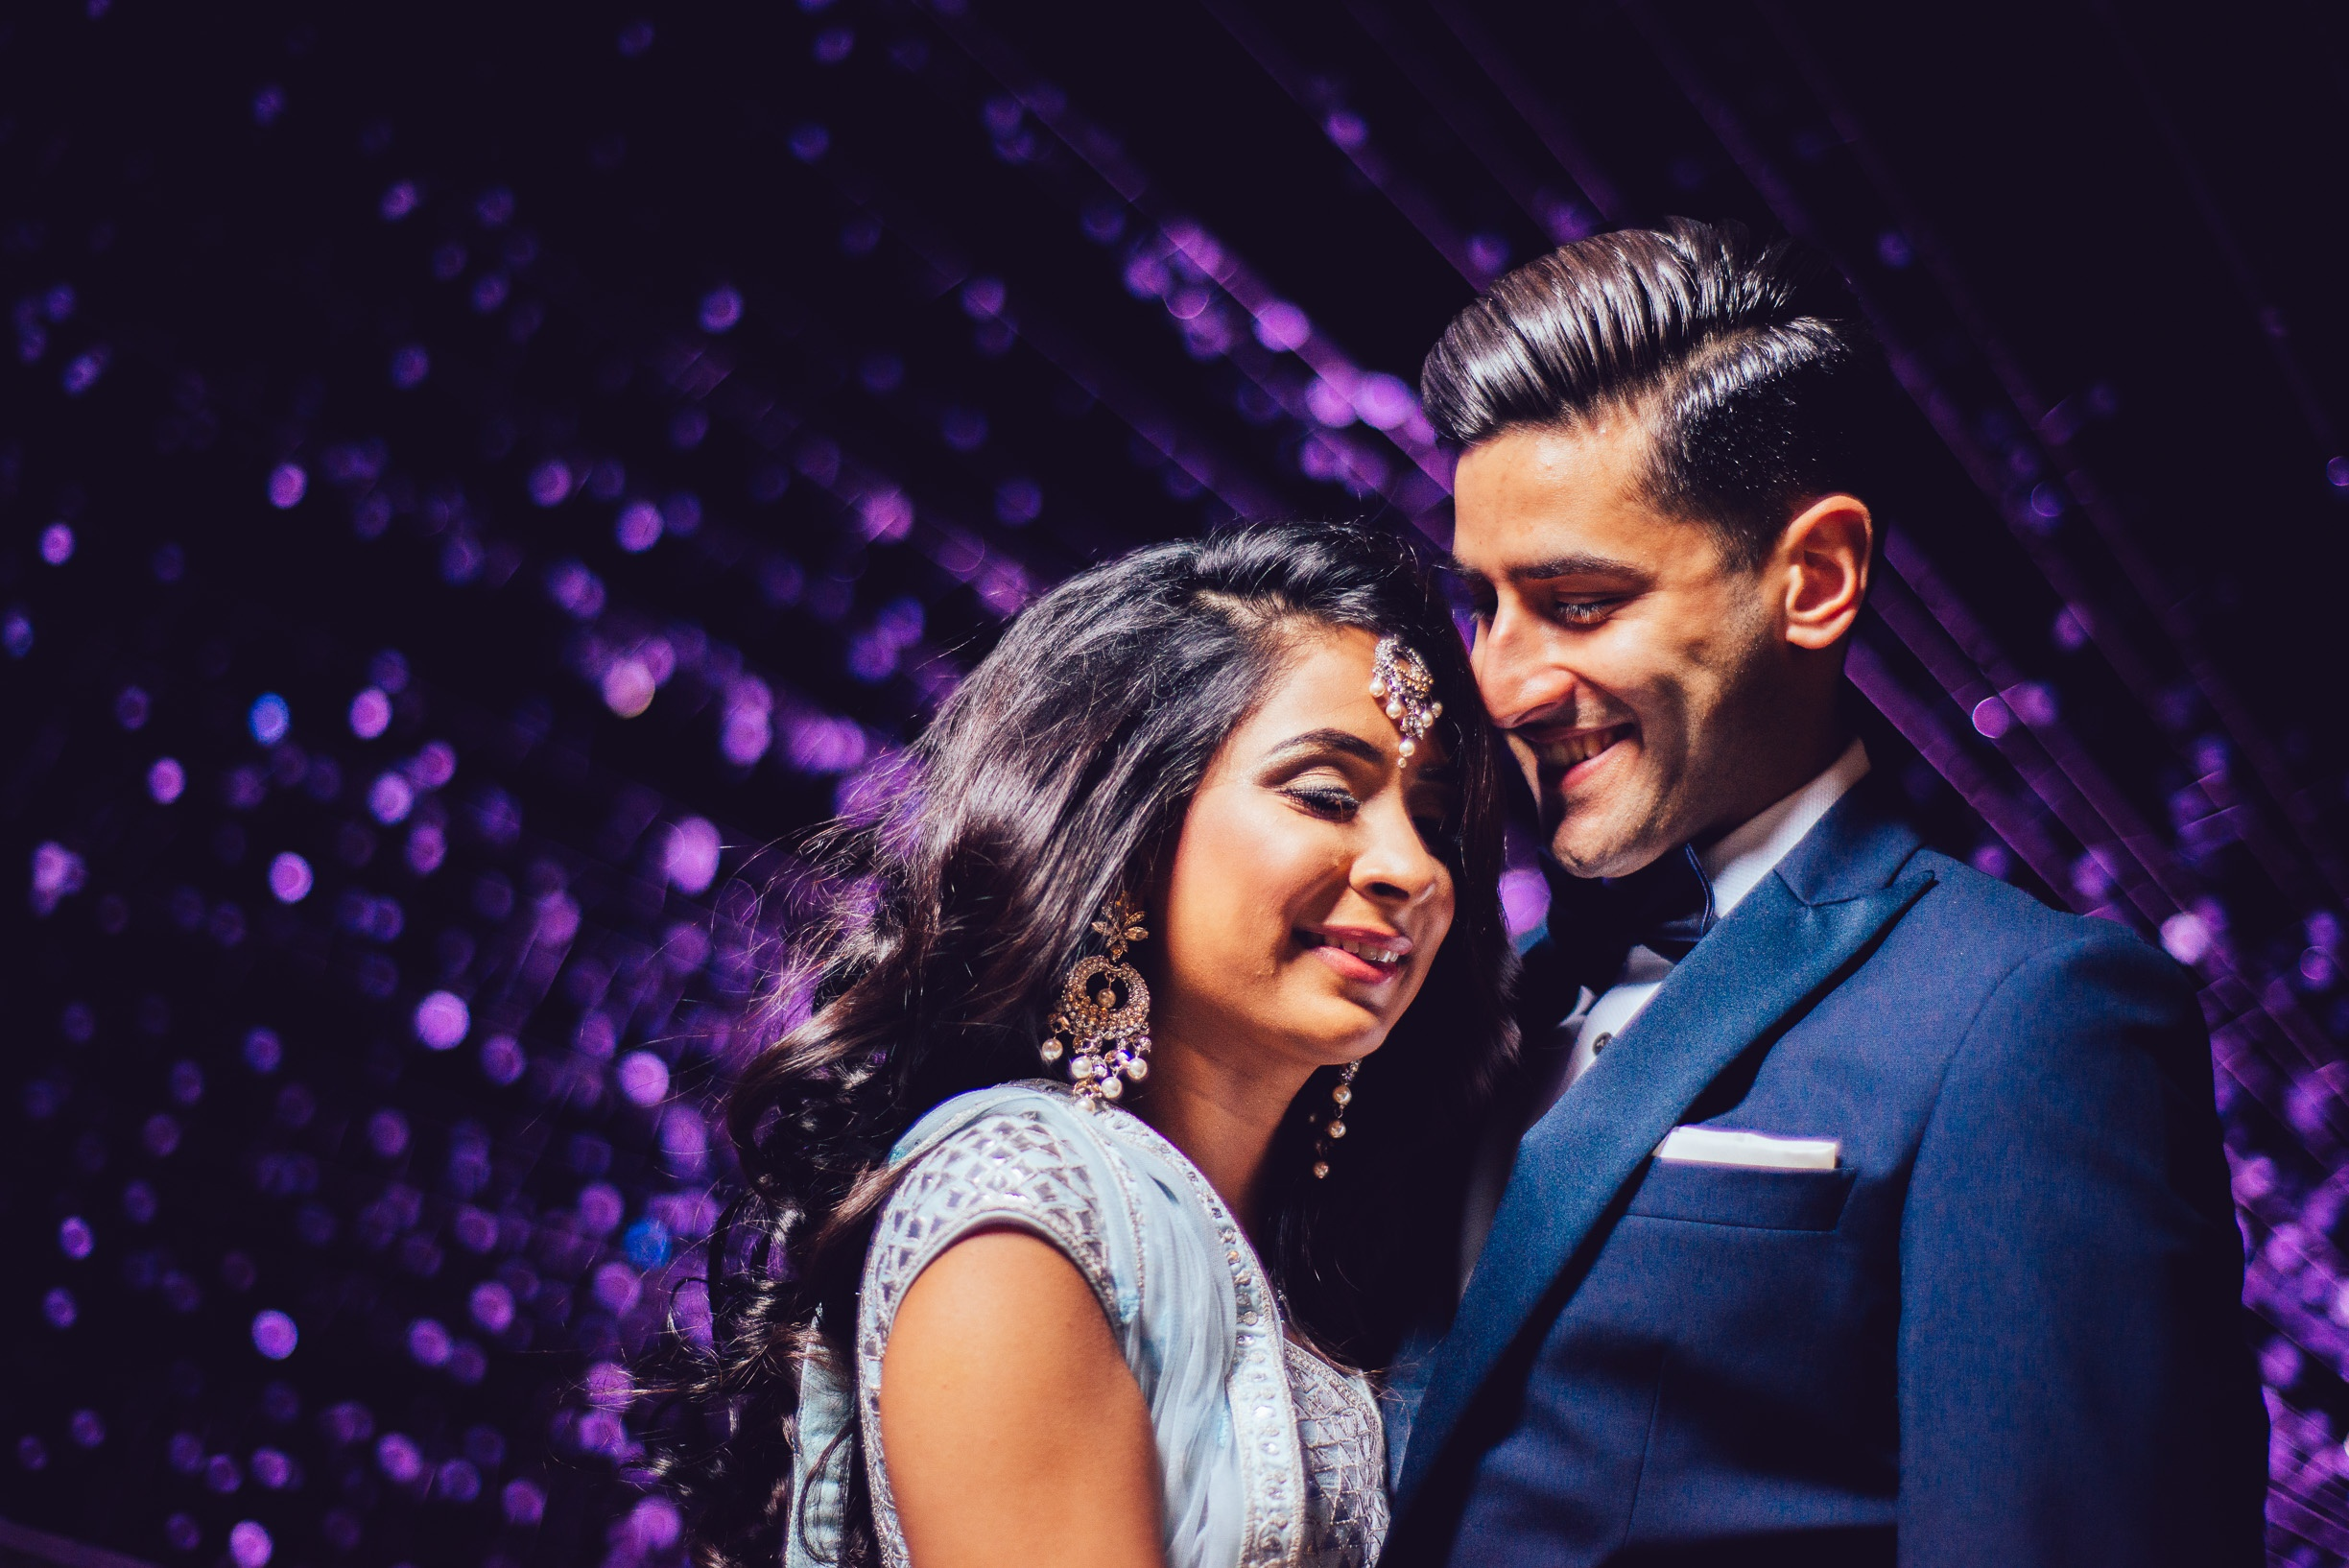 amit&ceema_eden_moments_wedding_photography-43